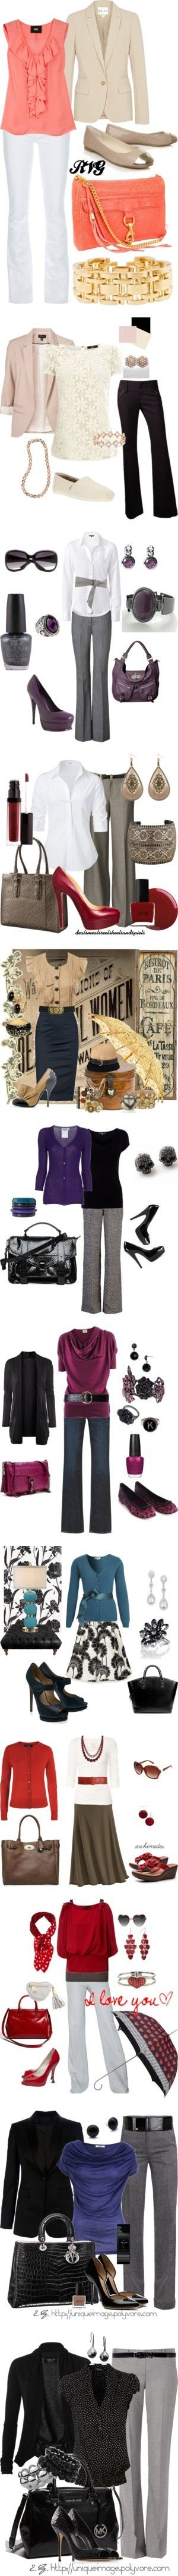 Business-casual with style!